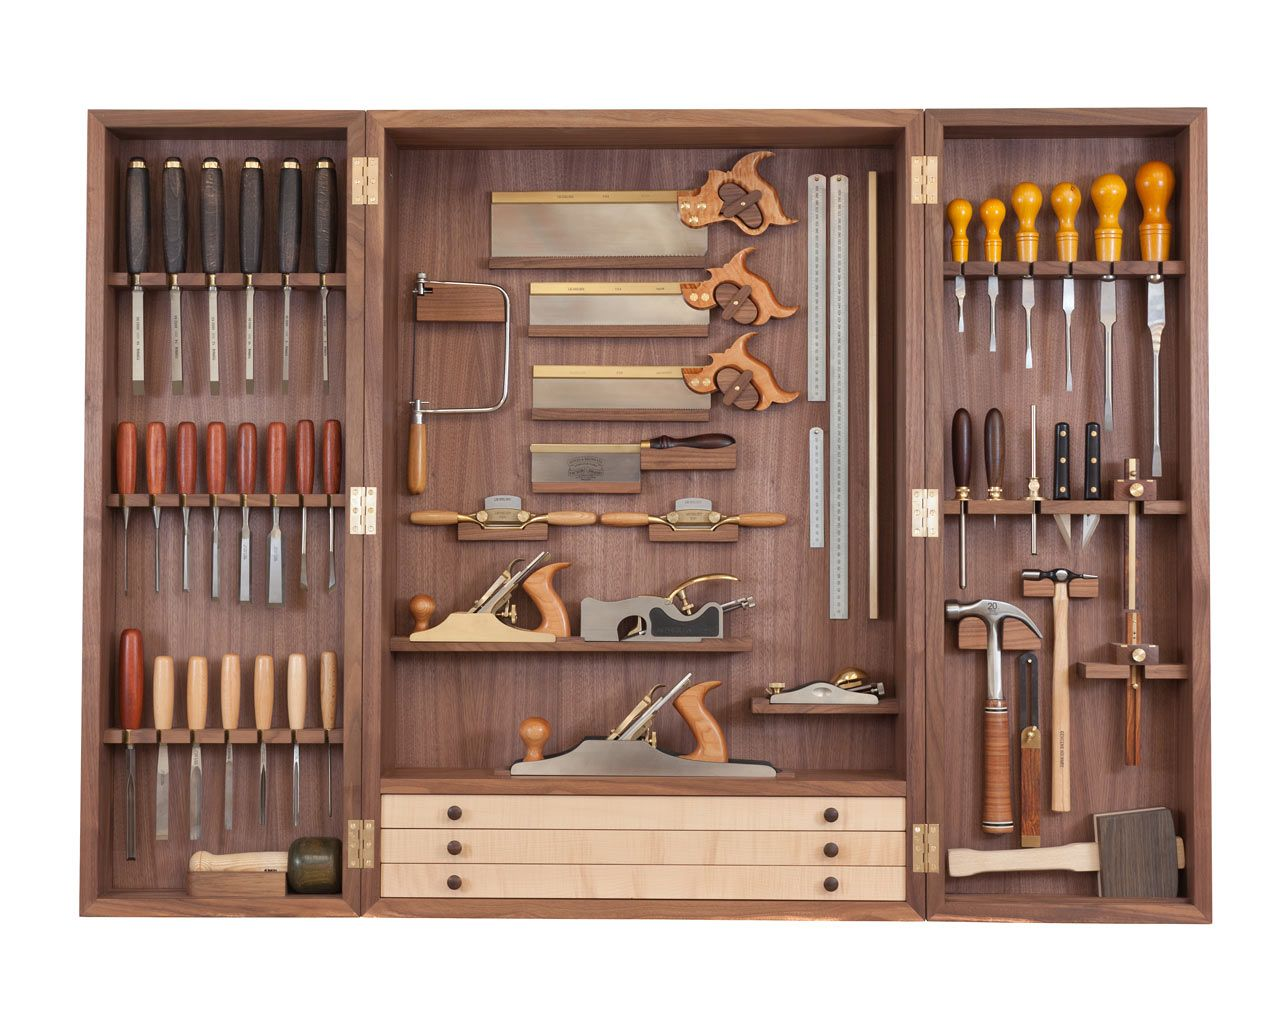 F5 Sir Terence Conran 5 Benchmark Tool Cabinet For Our